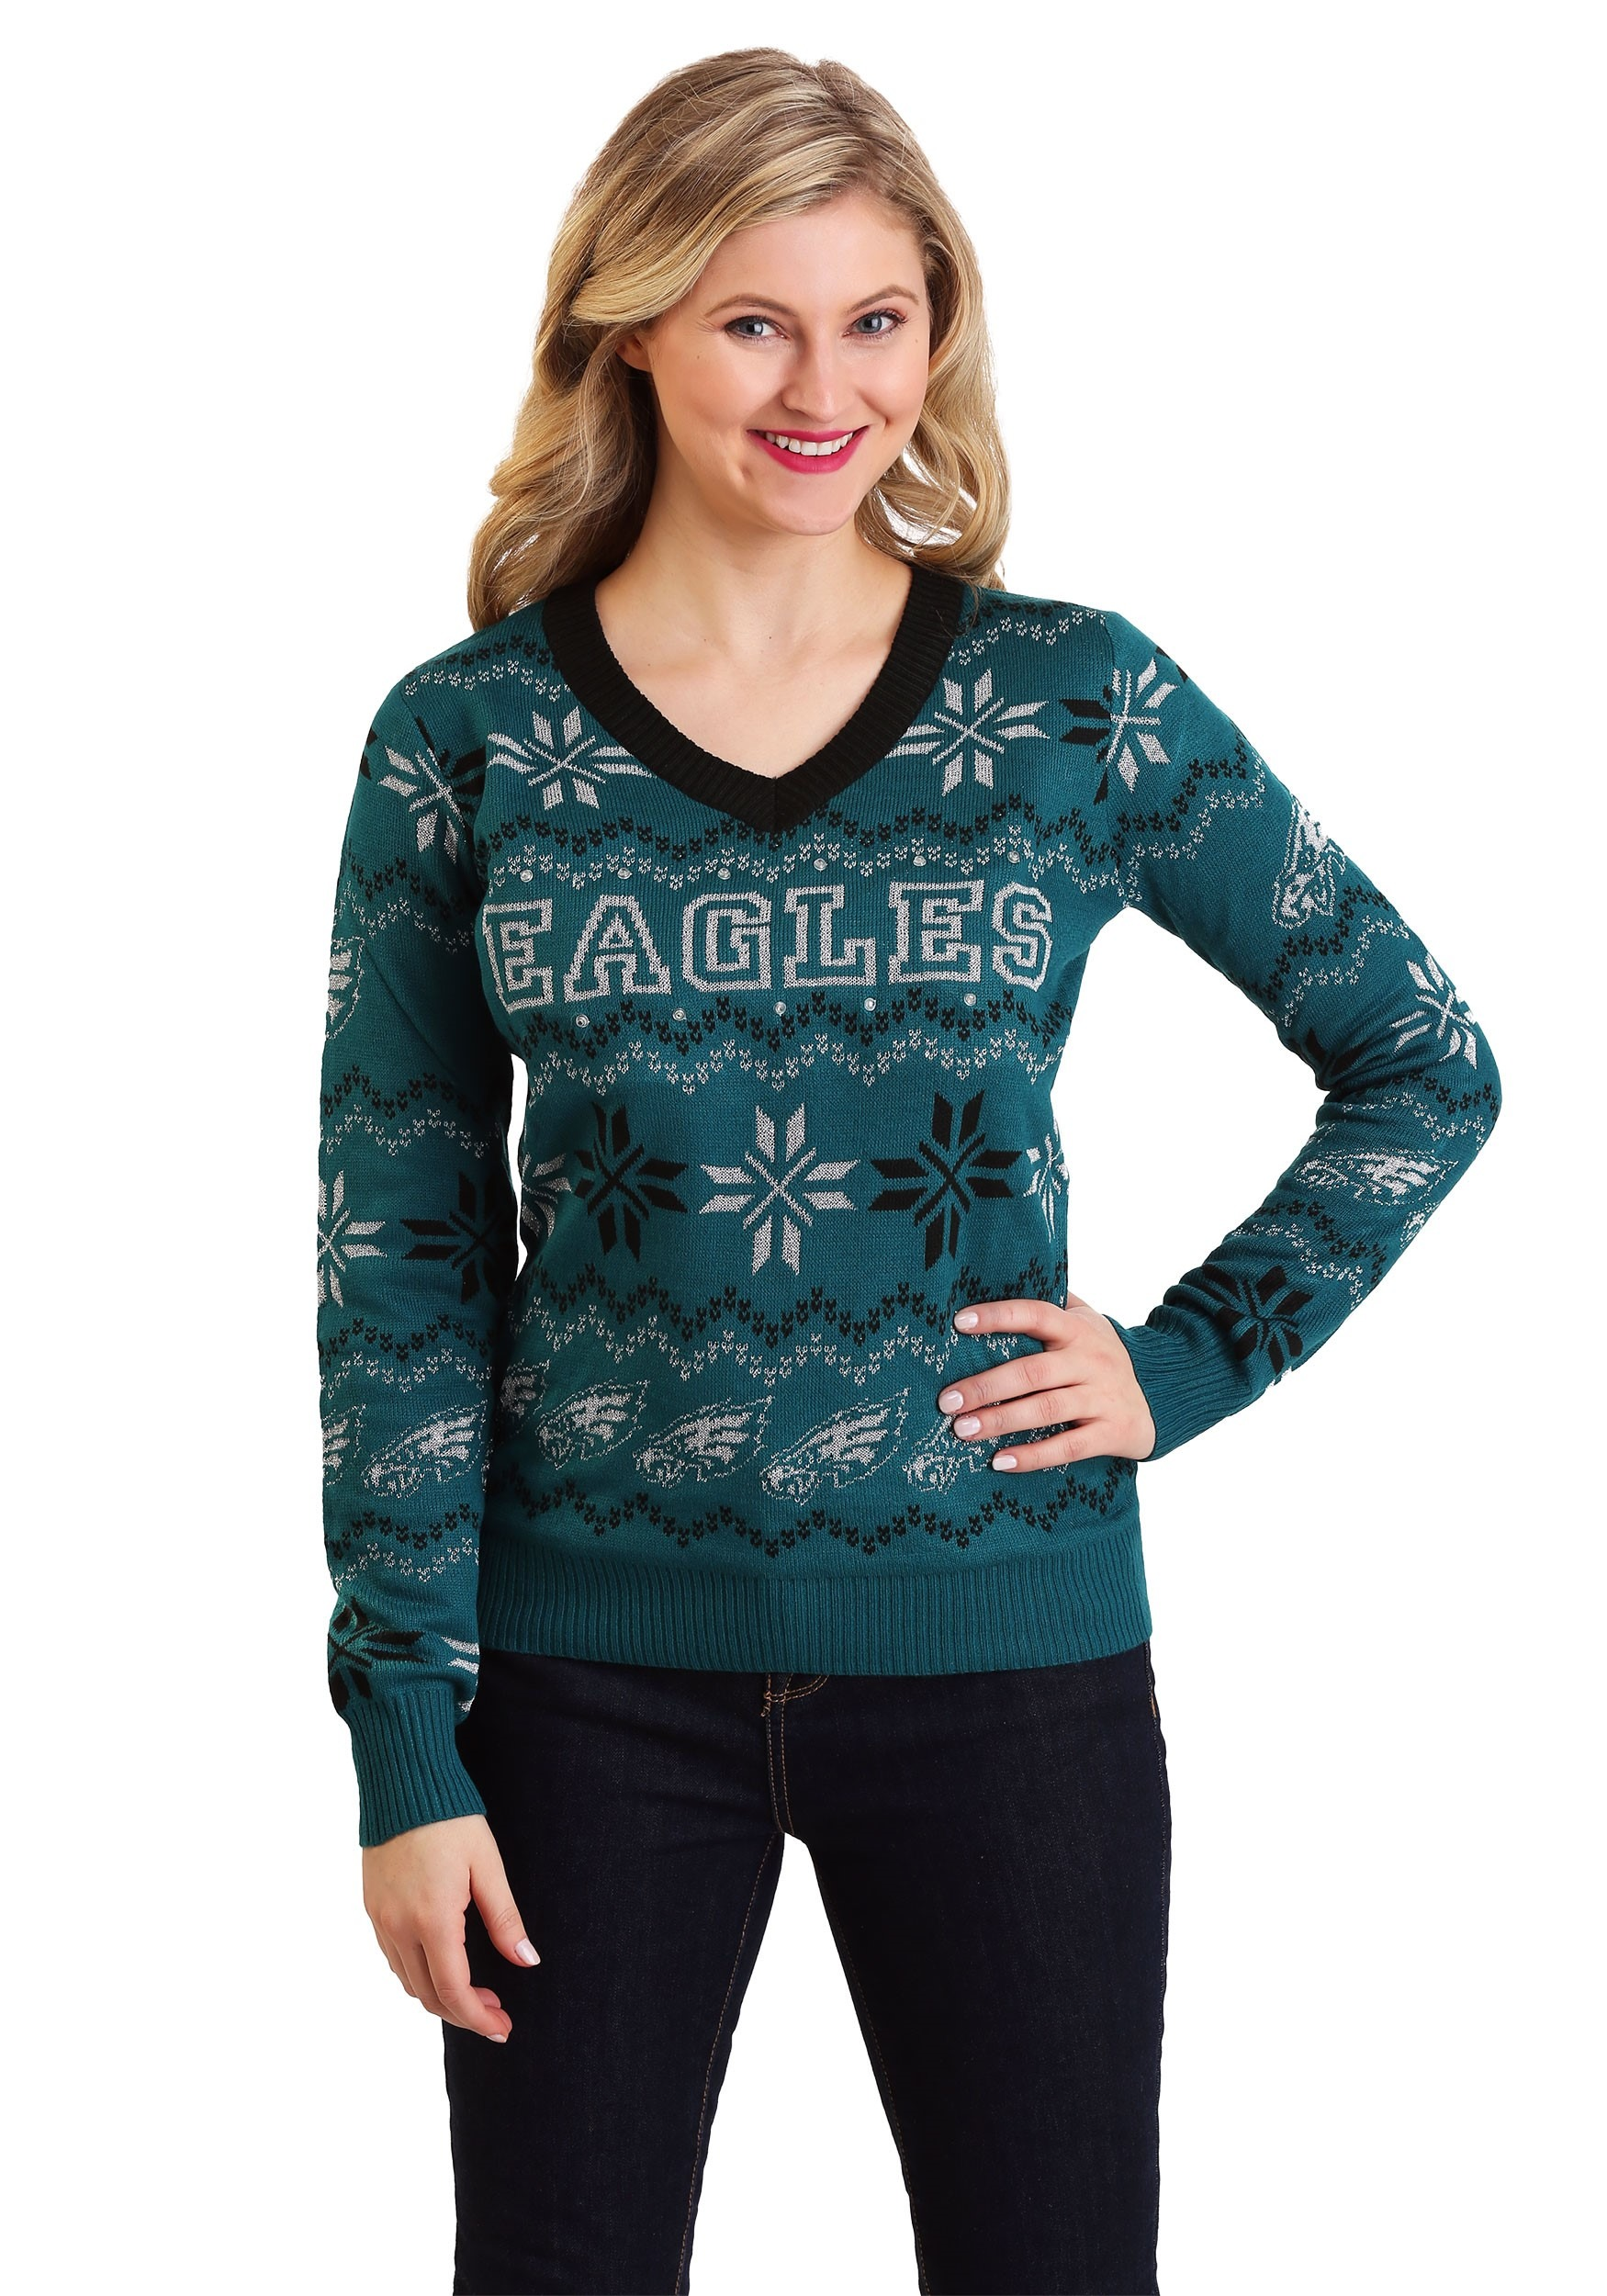 Women's Philadelphia Eagles Light Up V-Neck Ugly Christmas Sweater